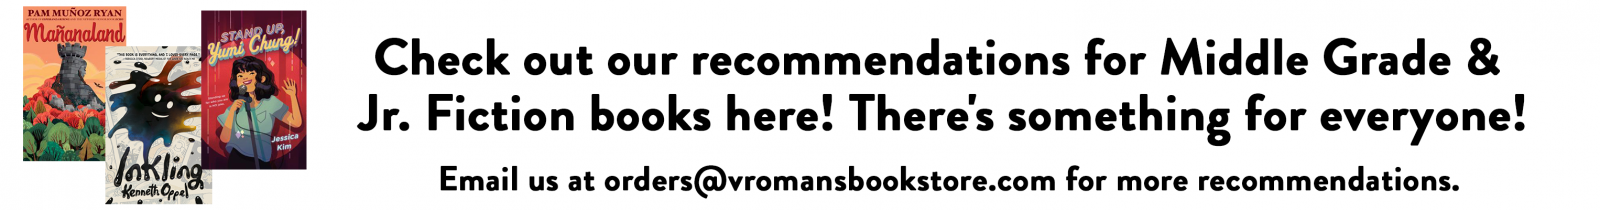 Check out our recommendations for Middle Grade &  Jr. Fiction books here! There's something for everyone! Email us at orders@vromansbookstore.com for more recommendations.